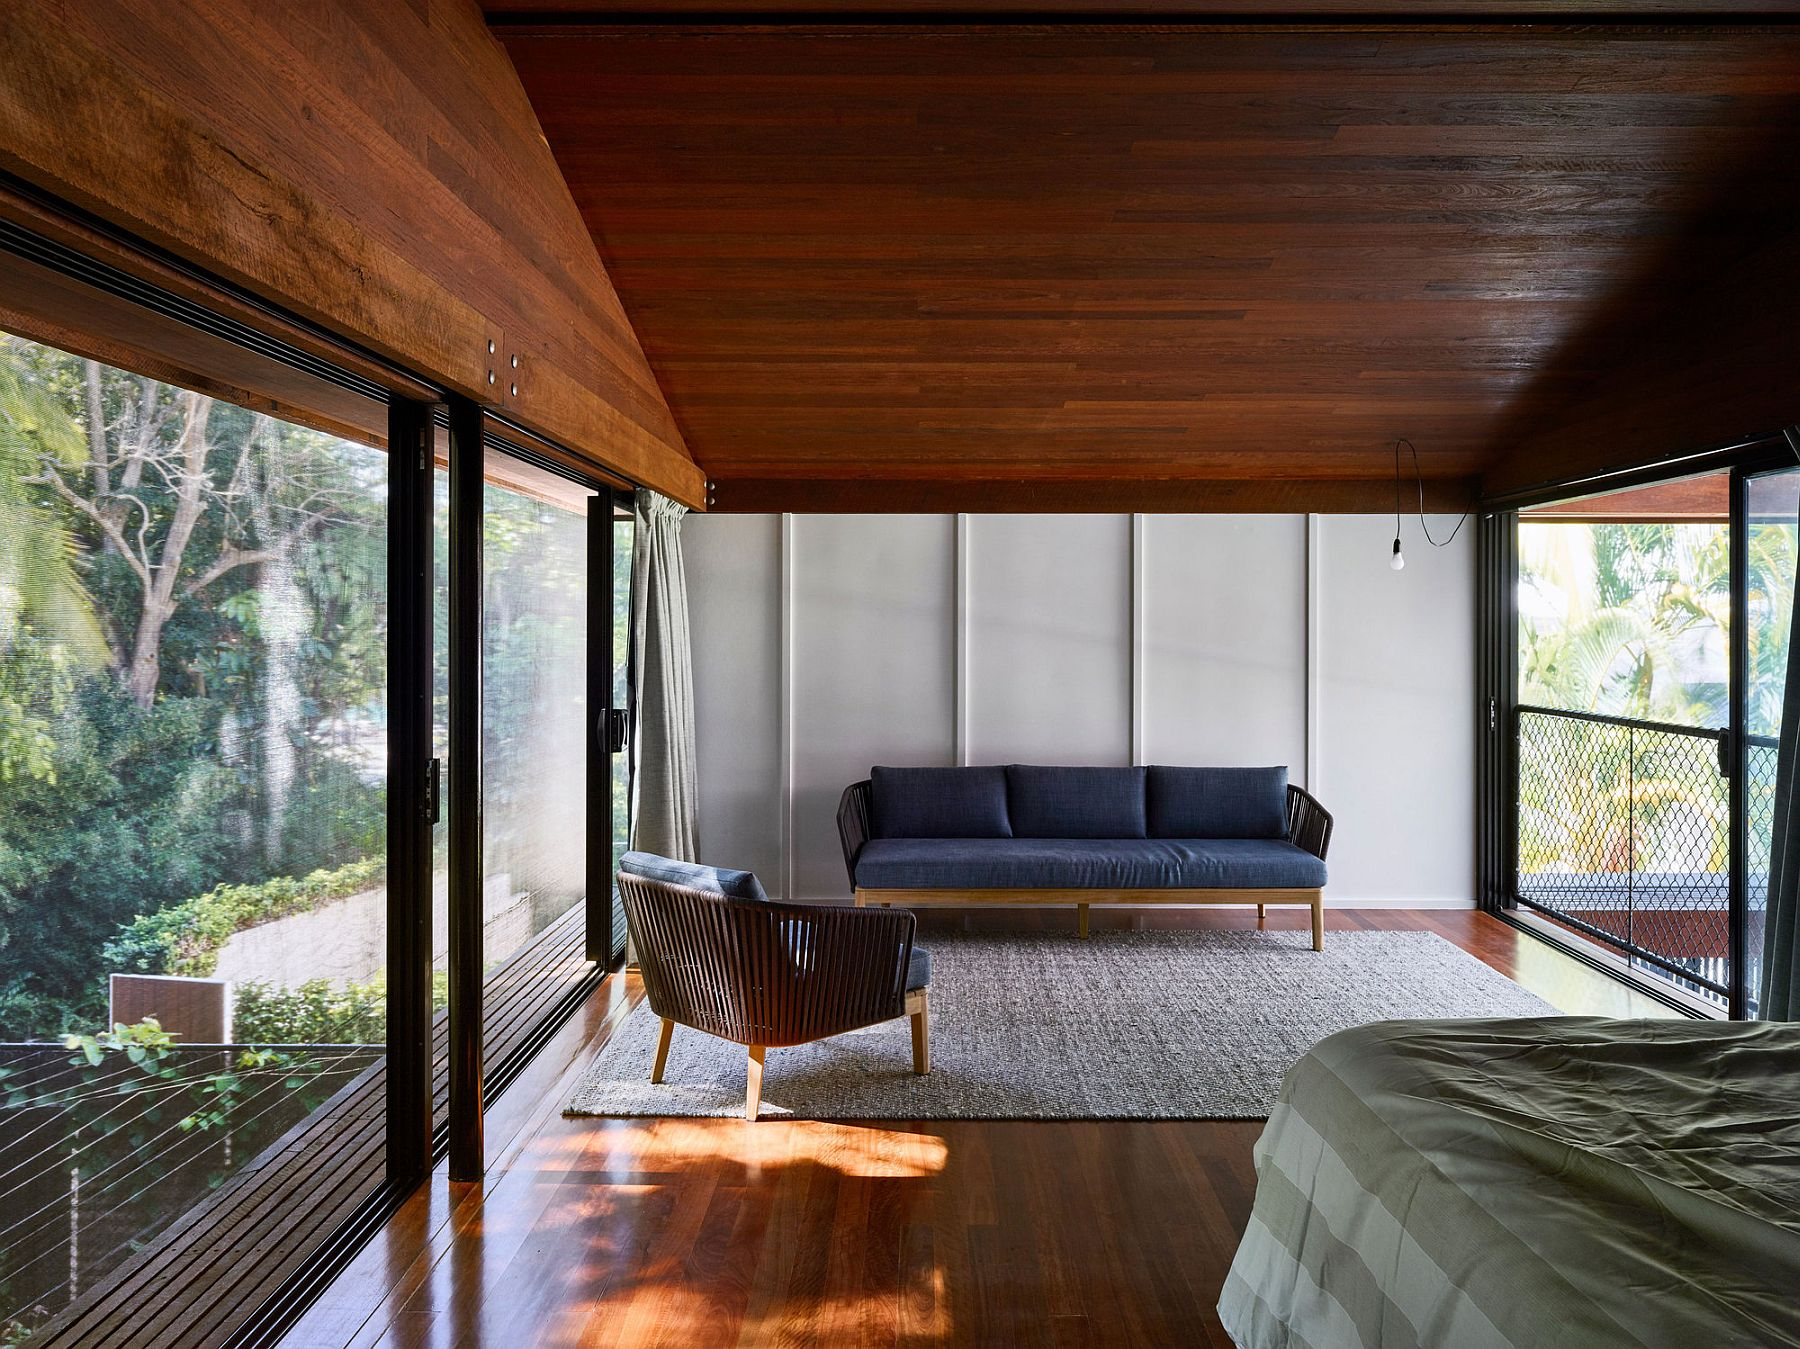 Upper level bedrooms with a view of the rainforest